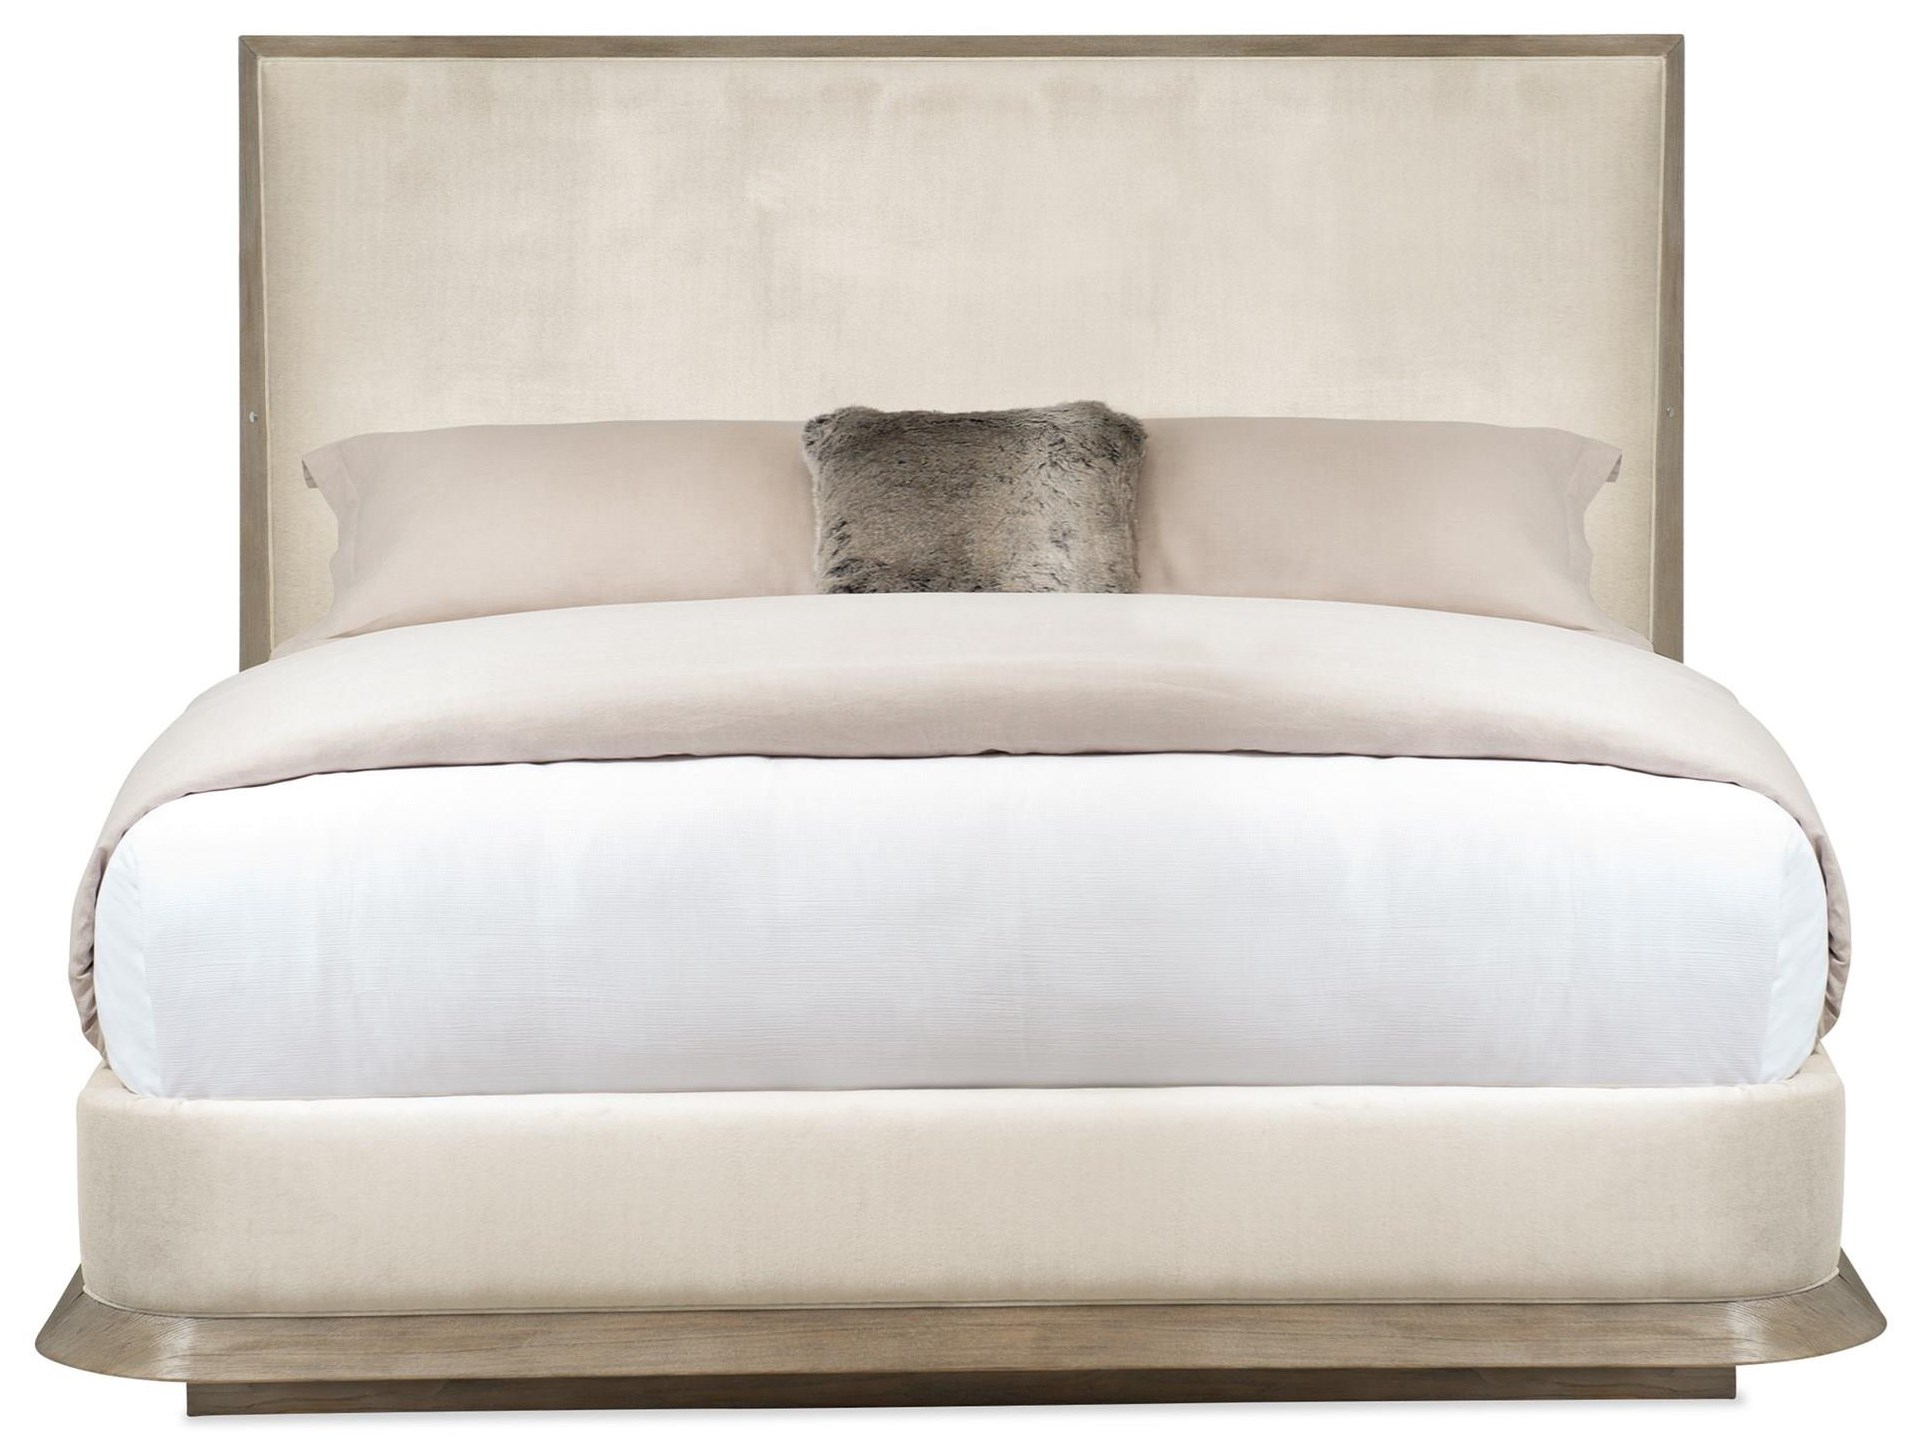 The Stage is Set Queen Upholstered Bed by Caracole at Baer's Furniture